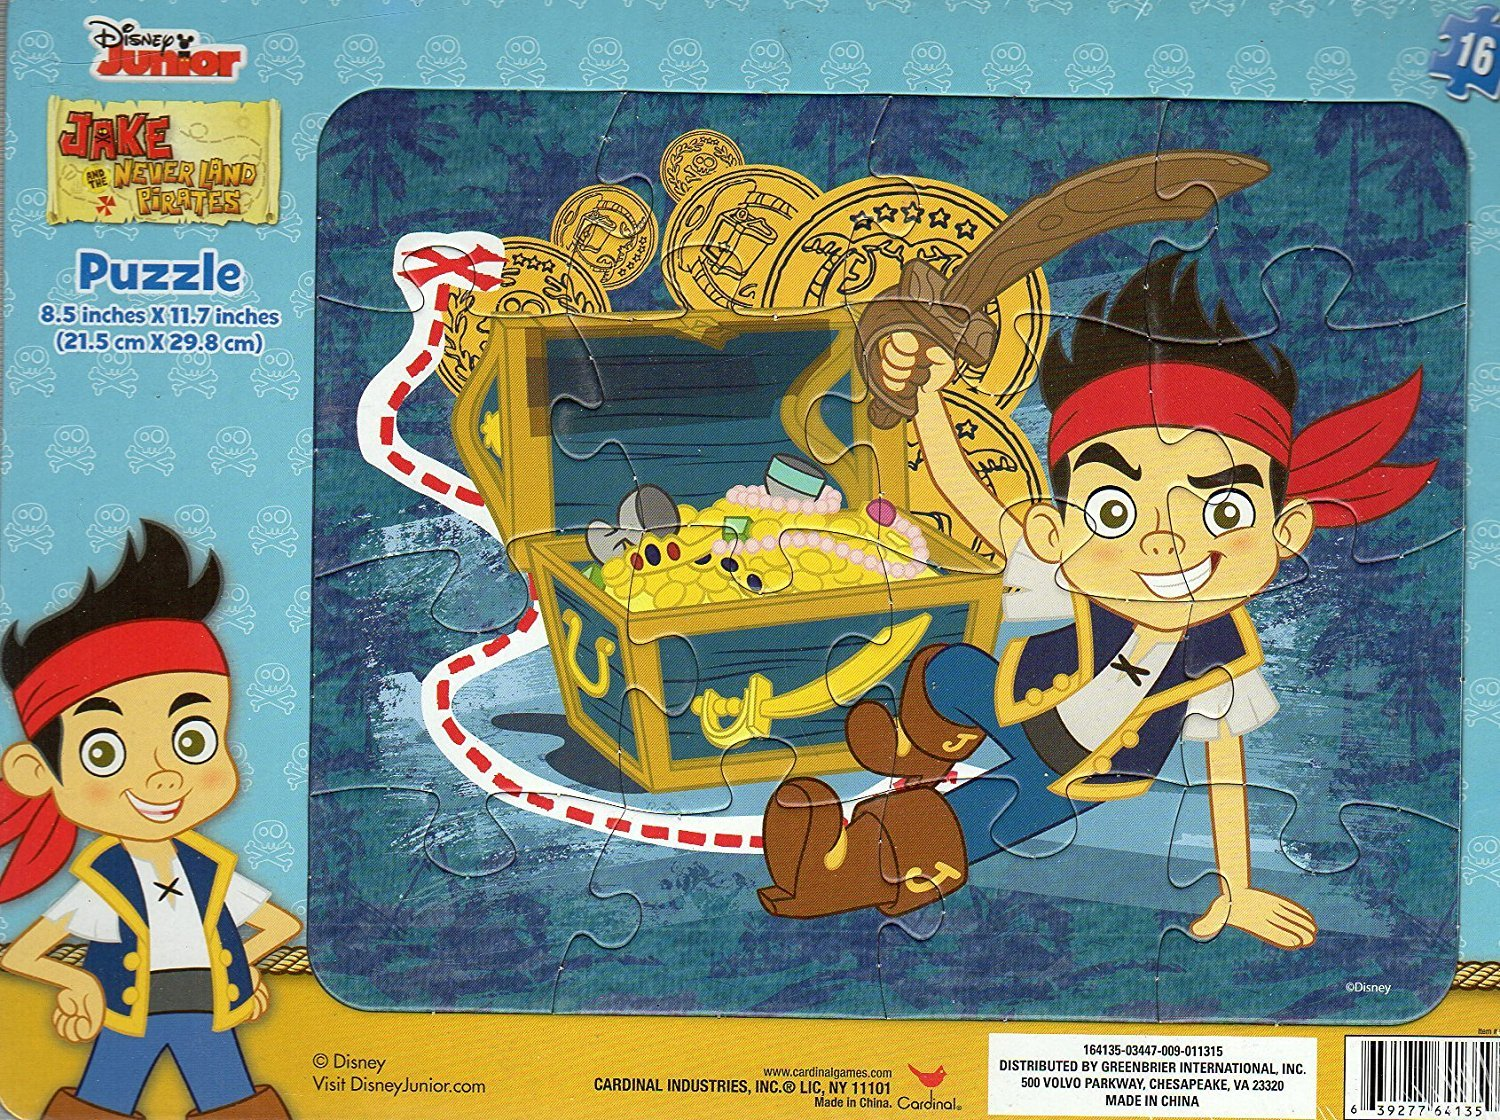 Disney Junior - Jake and the Never Land Pirates - 16 Pieces Jigsaw Puzzle